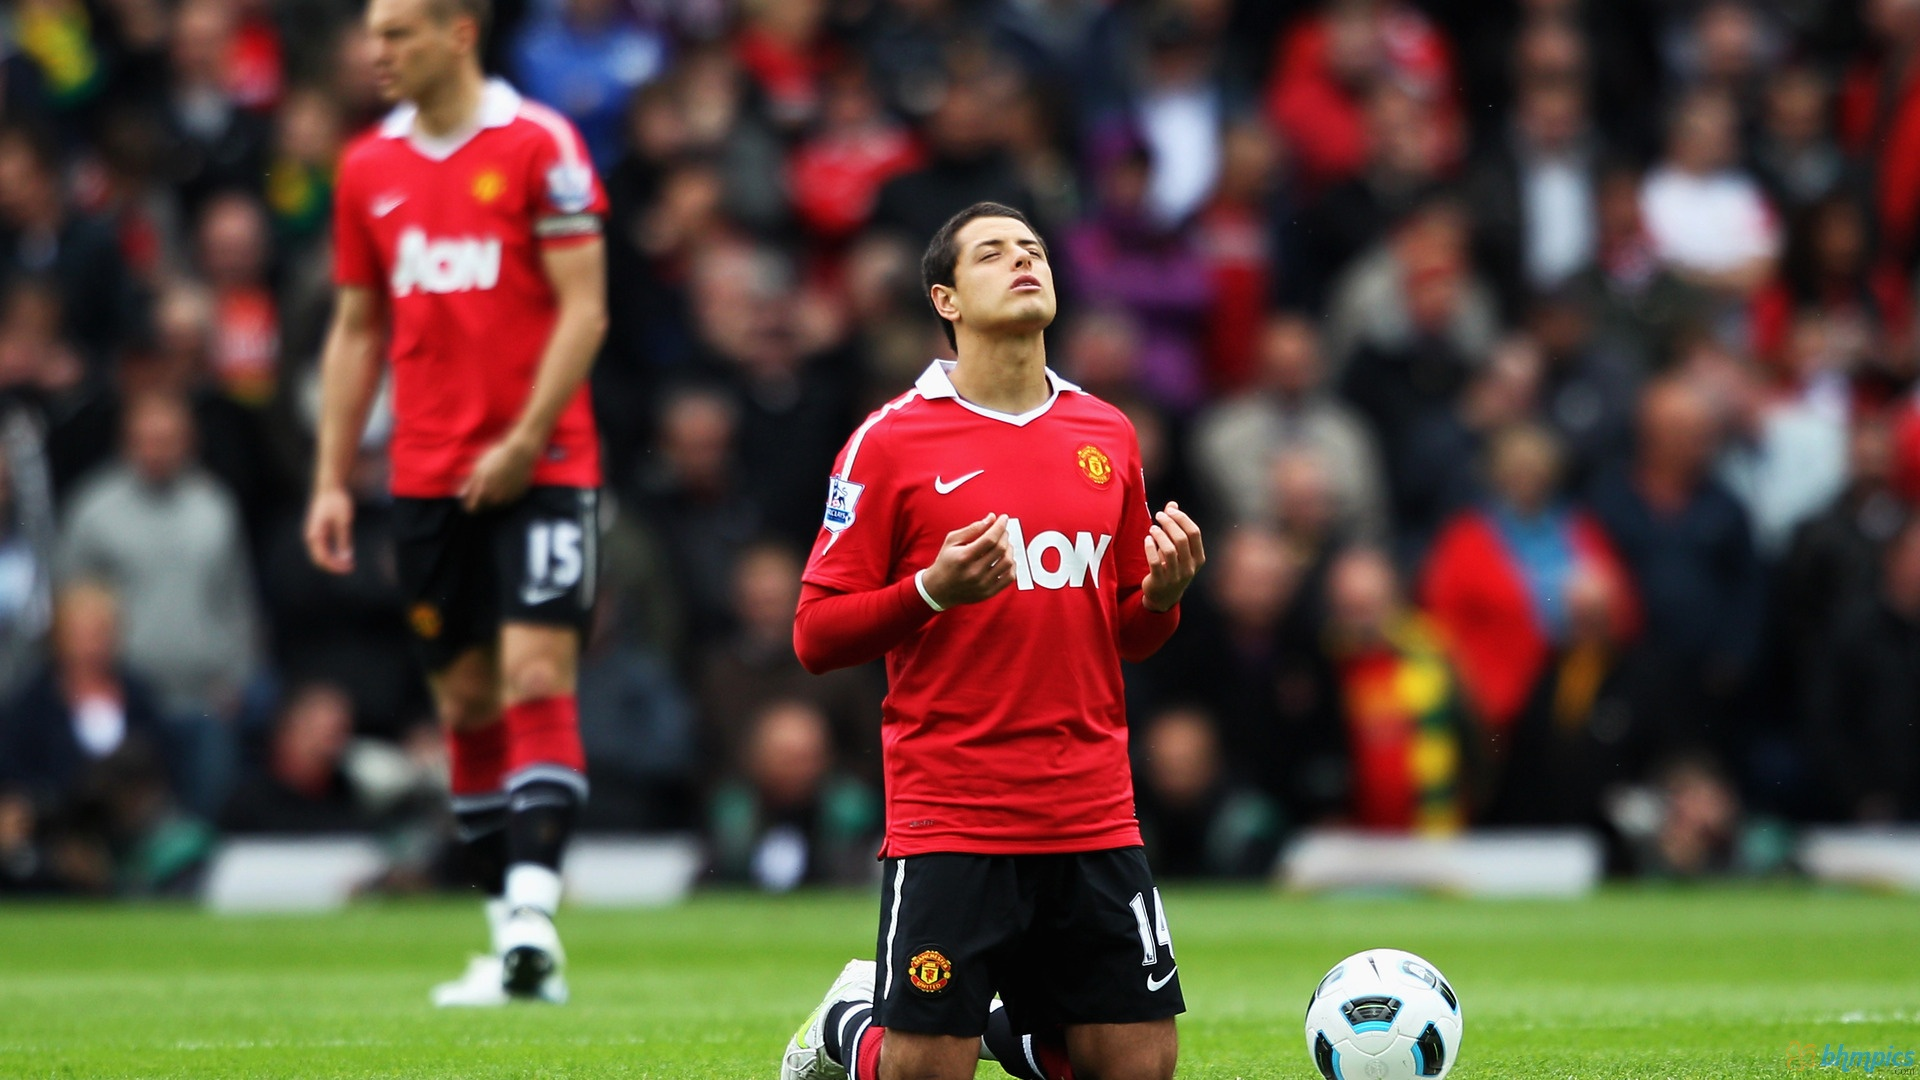 ENGLAND: Chicharito to leave Man United in the Summer ...